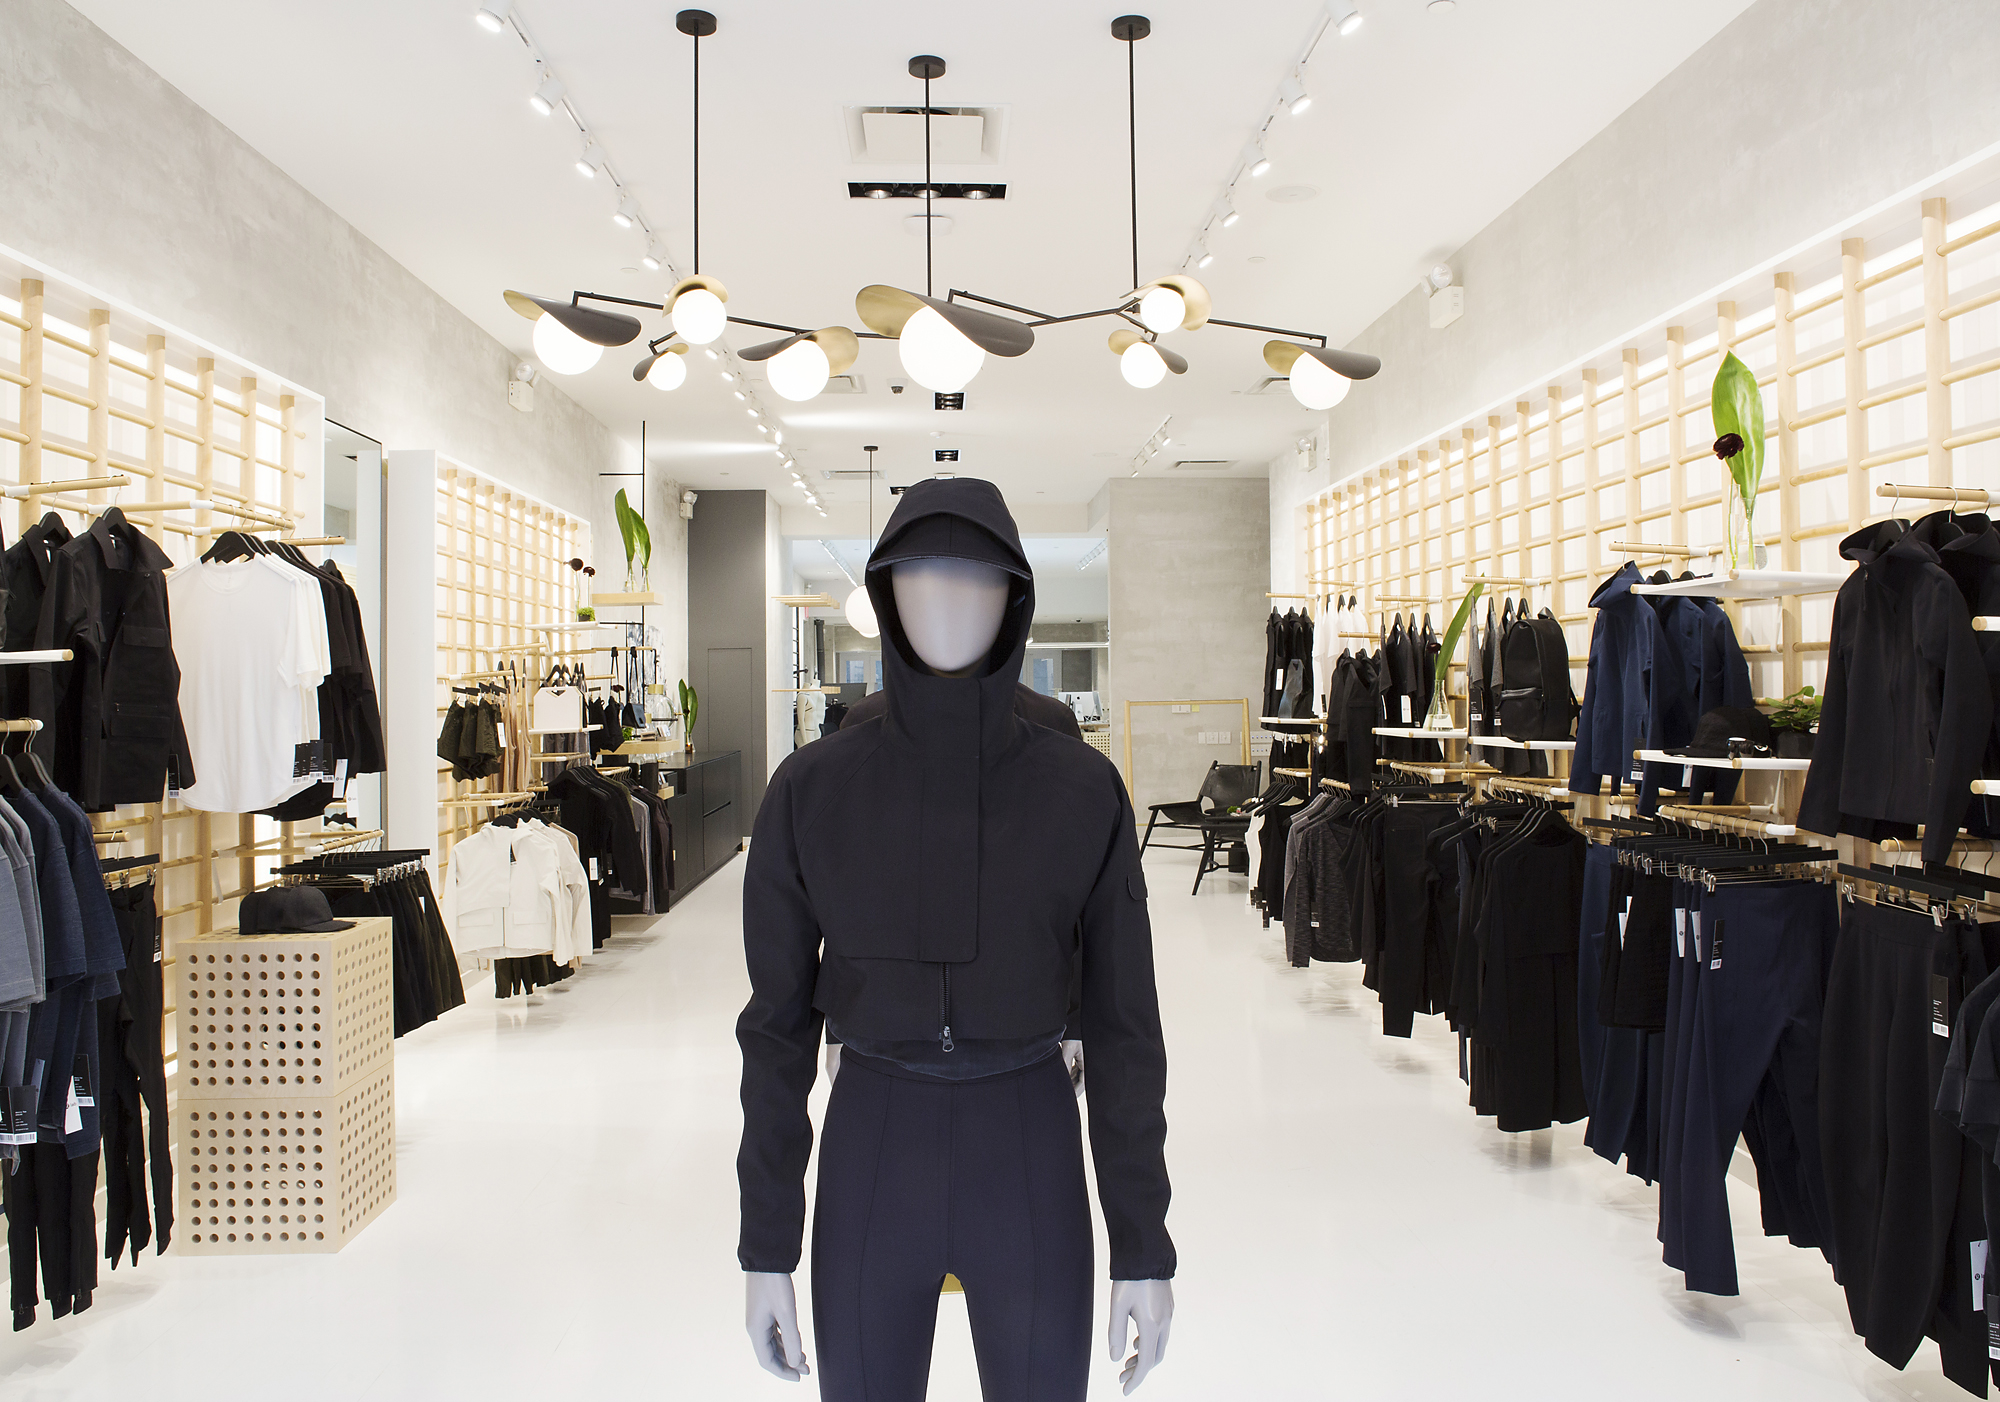 The Lululemon Lab opened its first New York City location in the NoHo neighborhood of Manhattan.